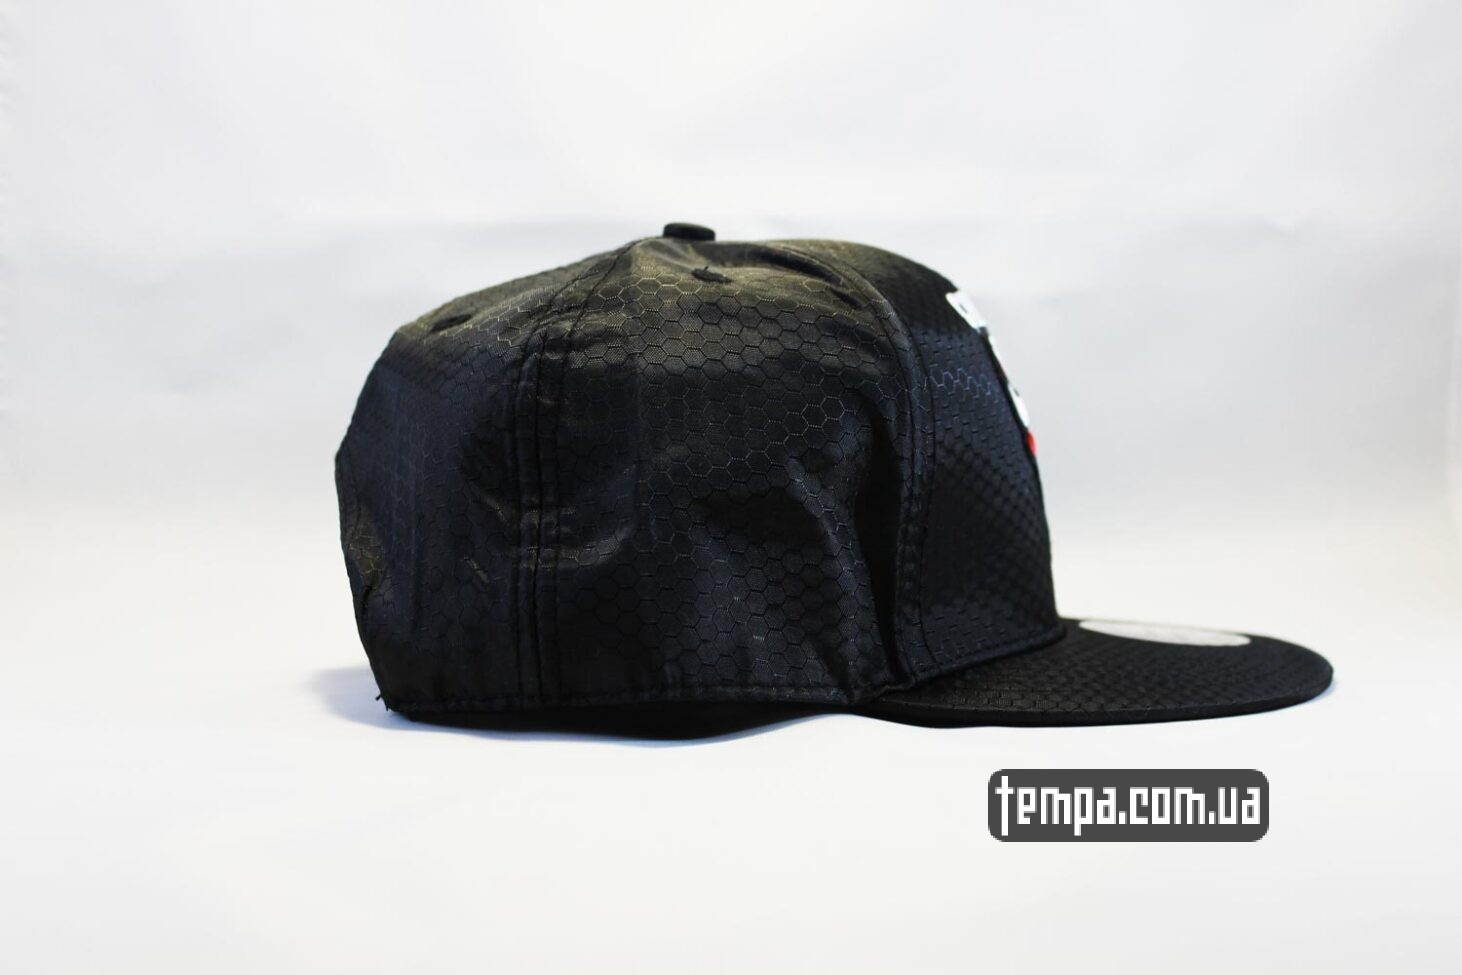 чикаго булс купить Украина кепка snapback Chicago Bulls NewEra кажаная черная